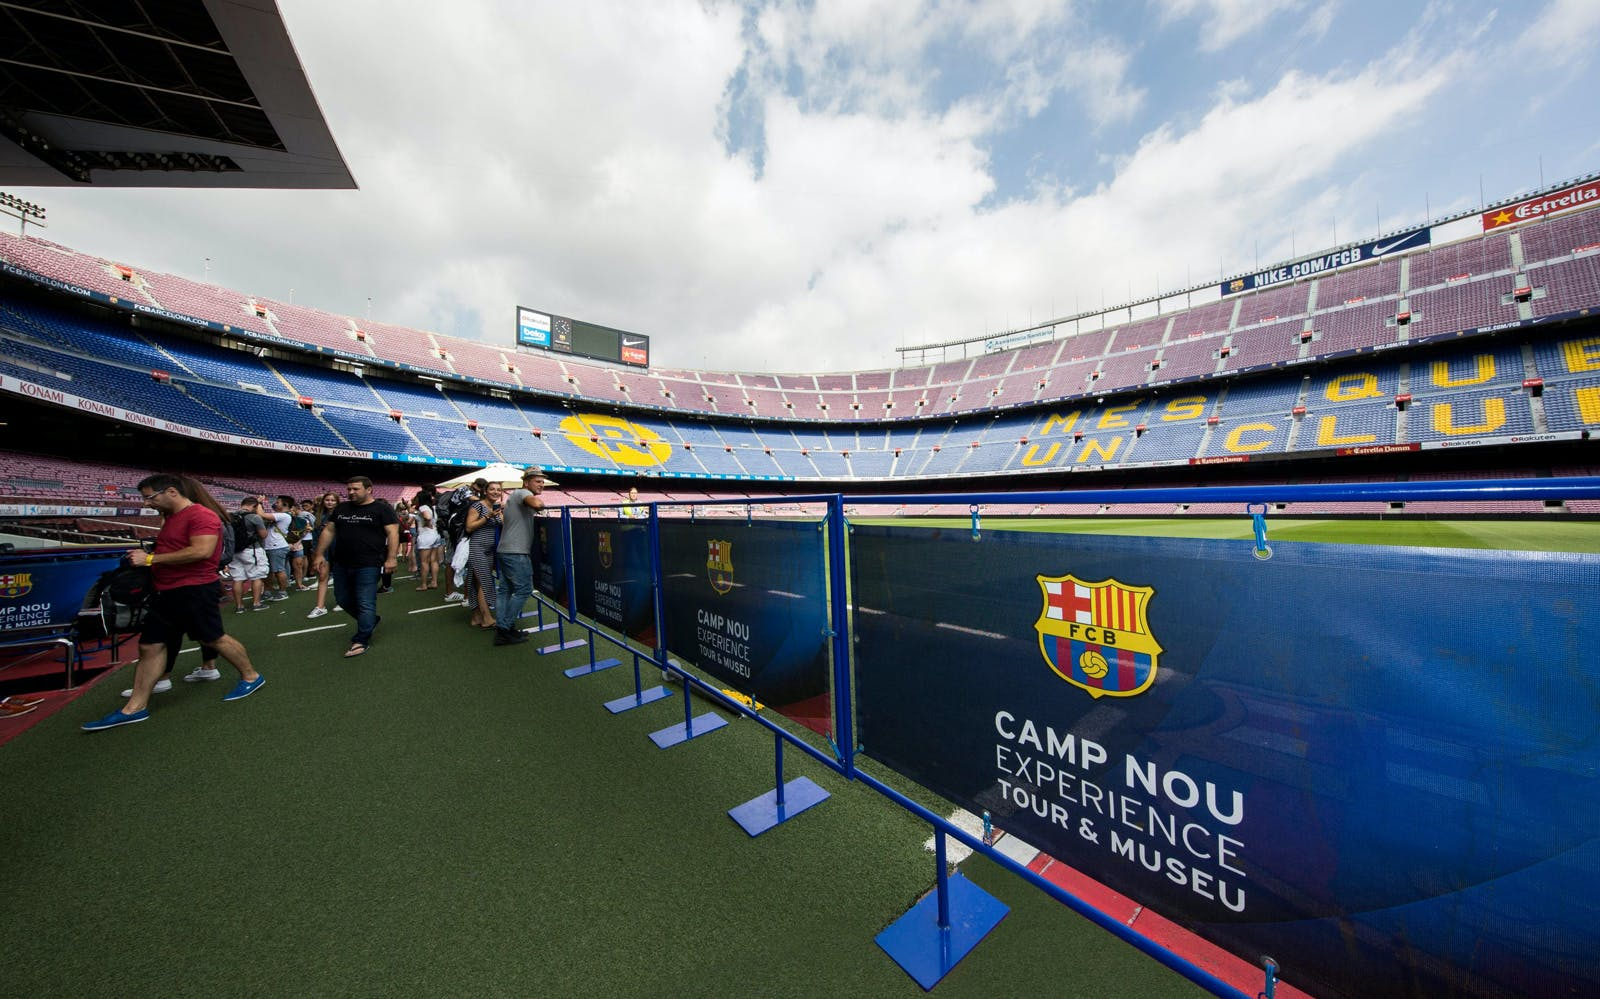 Visita Camp Nou con Experiencia Virtual Interactiva y Audioguía Multimedia